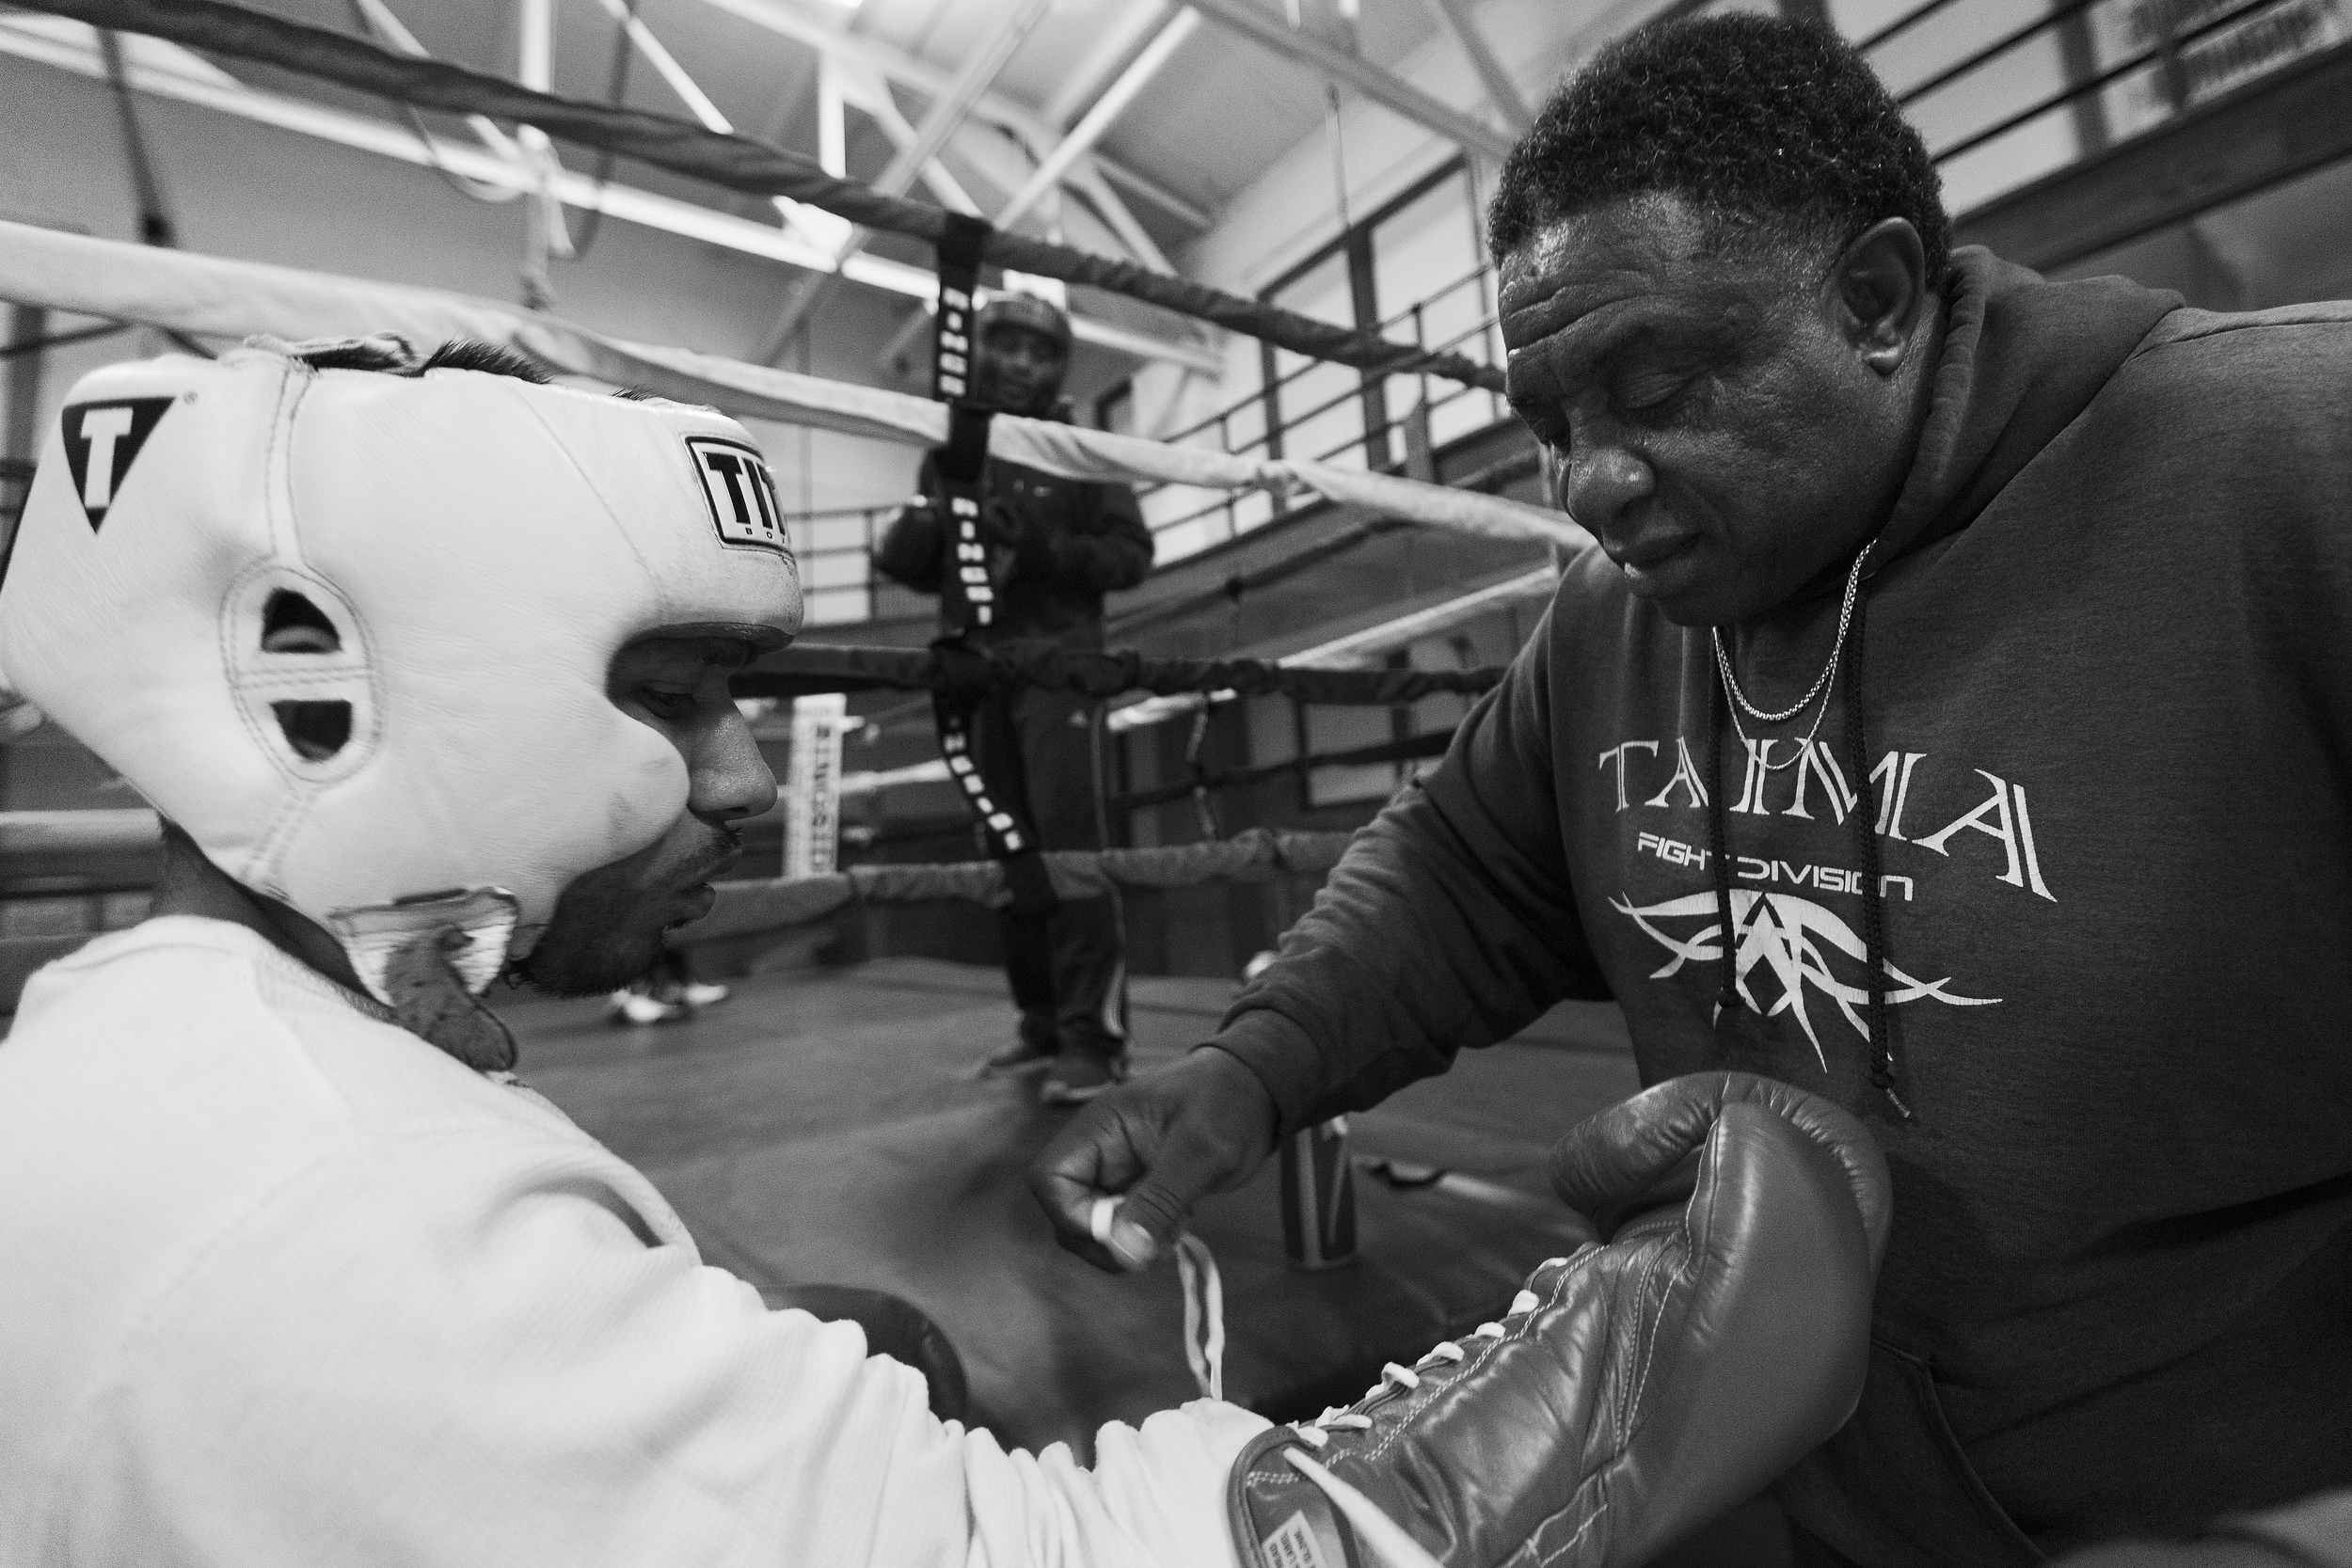 """Curtis Isaac, right, ties Santiago """"Santos"""" Garcia's gloved during boxing practice at Eastside Boxing Club in Kalamazoo, Mich. on May 17, 2016. Garcia won the Michigan Golden Glove novice class state championship at the 108 pound weight class in 2015 and 2016. (Bryan Bennett 